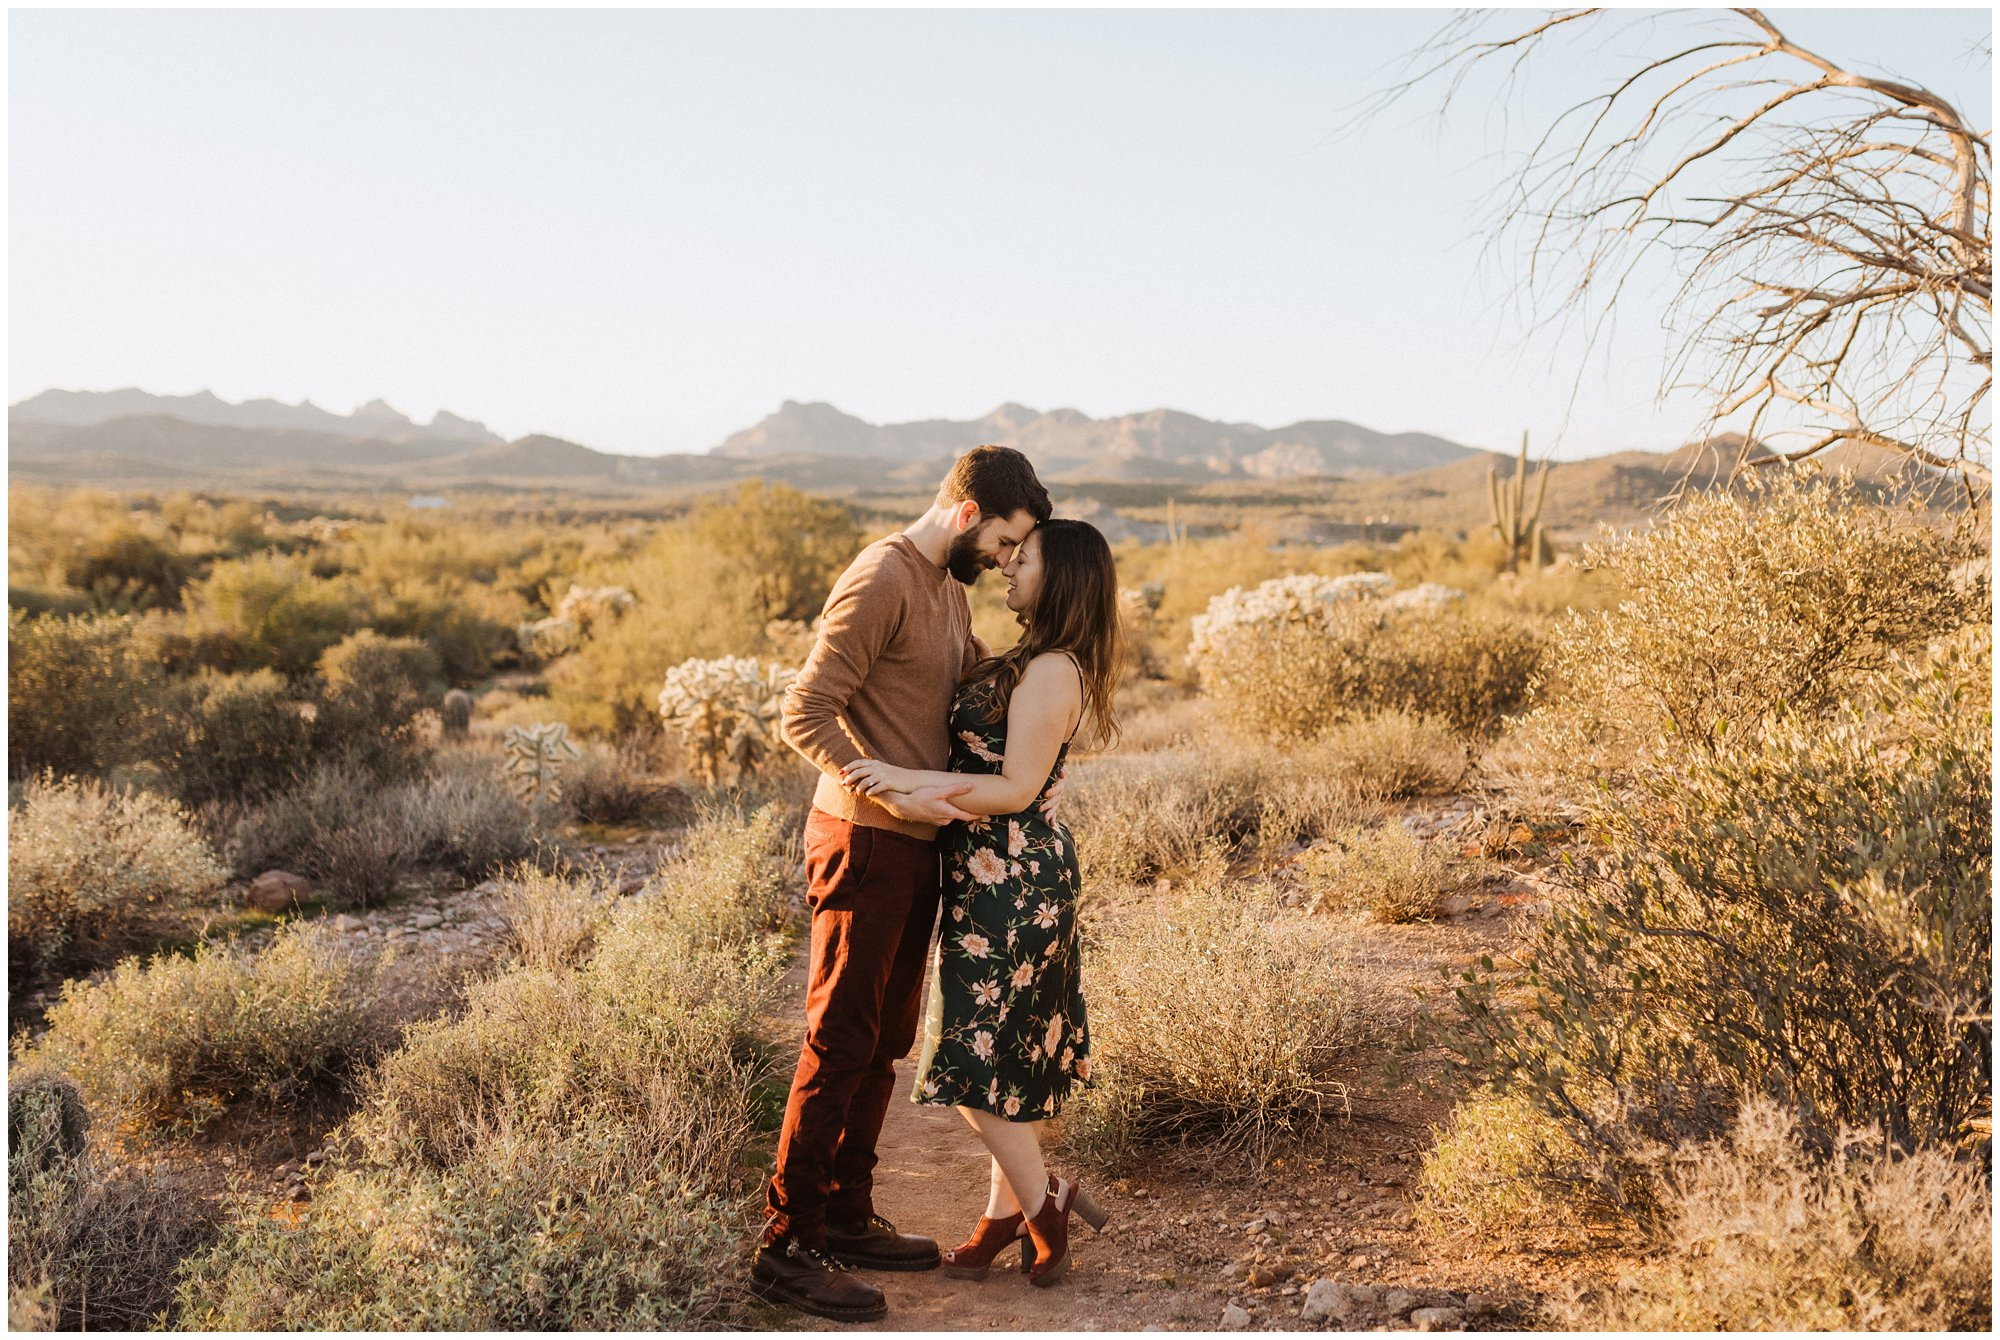 Arizona Desert Engagement Session - Megan + Geno - Ashtyn Nicole Photo_0013.jpg